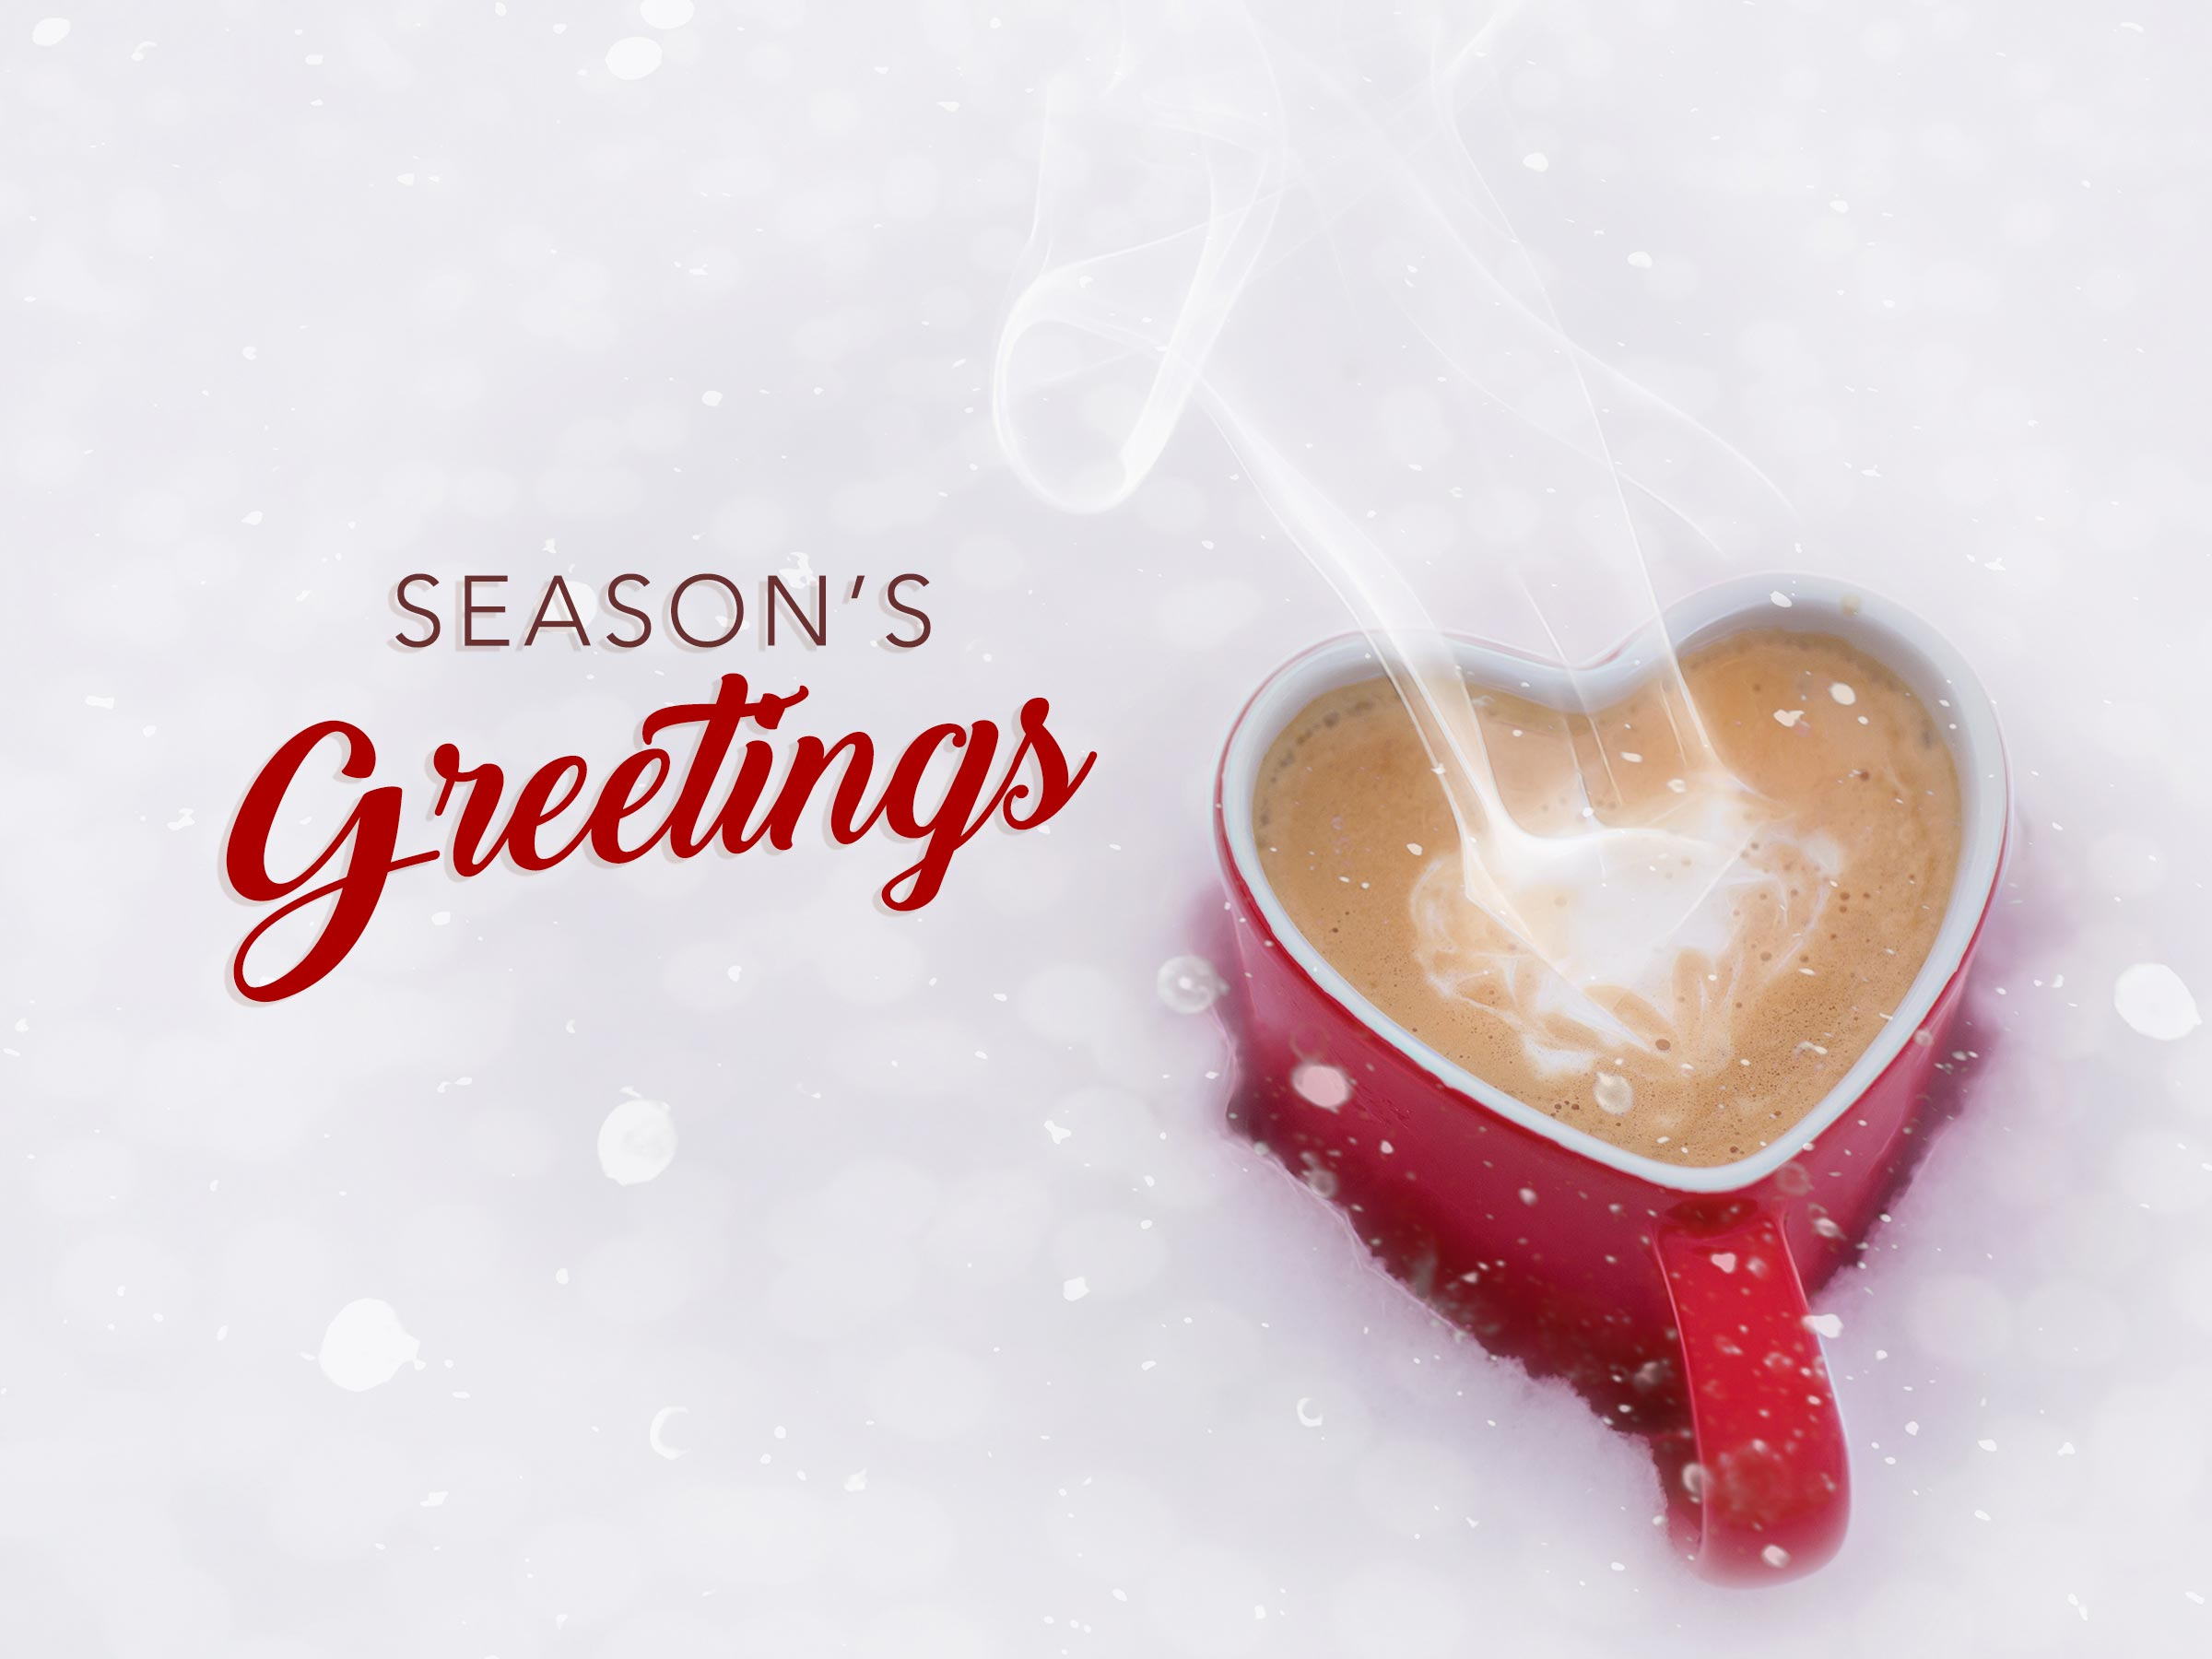 15 Seasons Greetings Cards Stock Images HD Wallpapers Winter 2400x1800